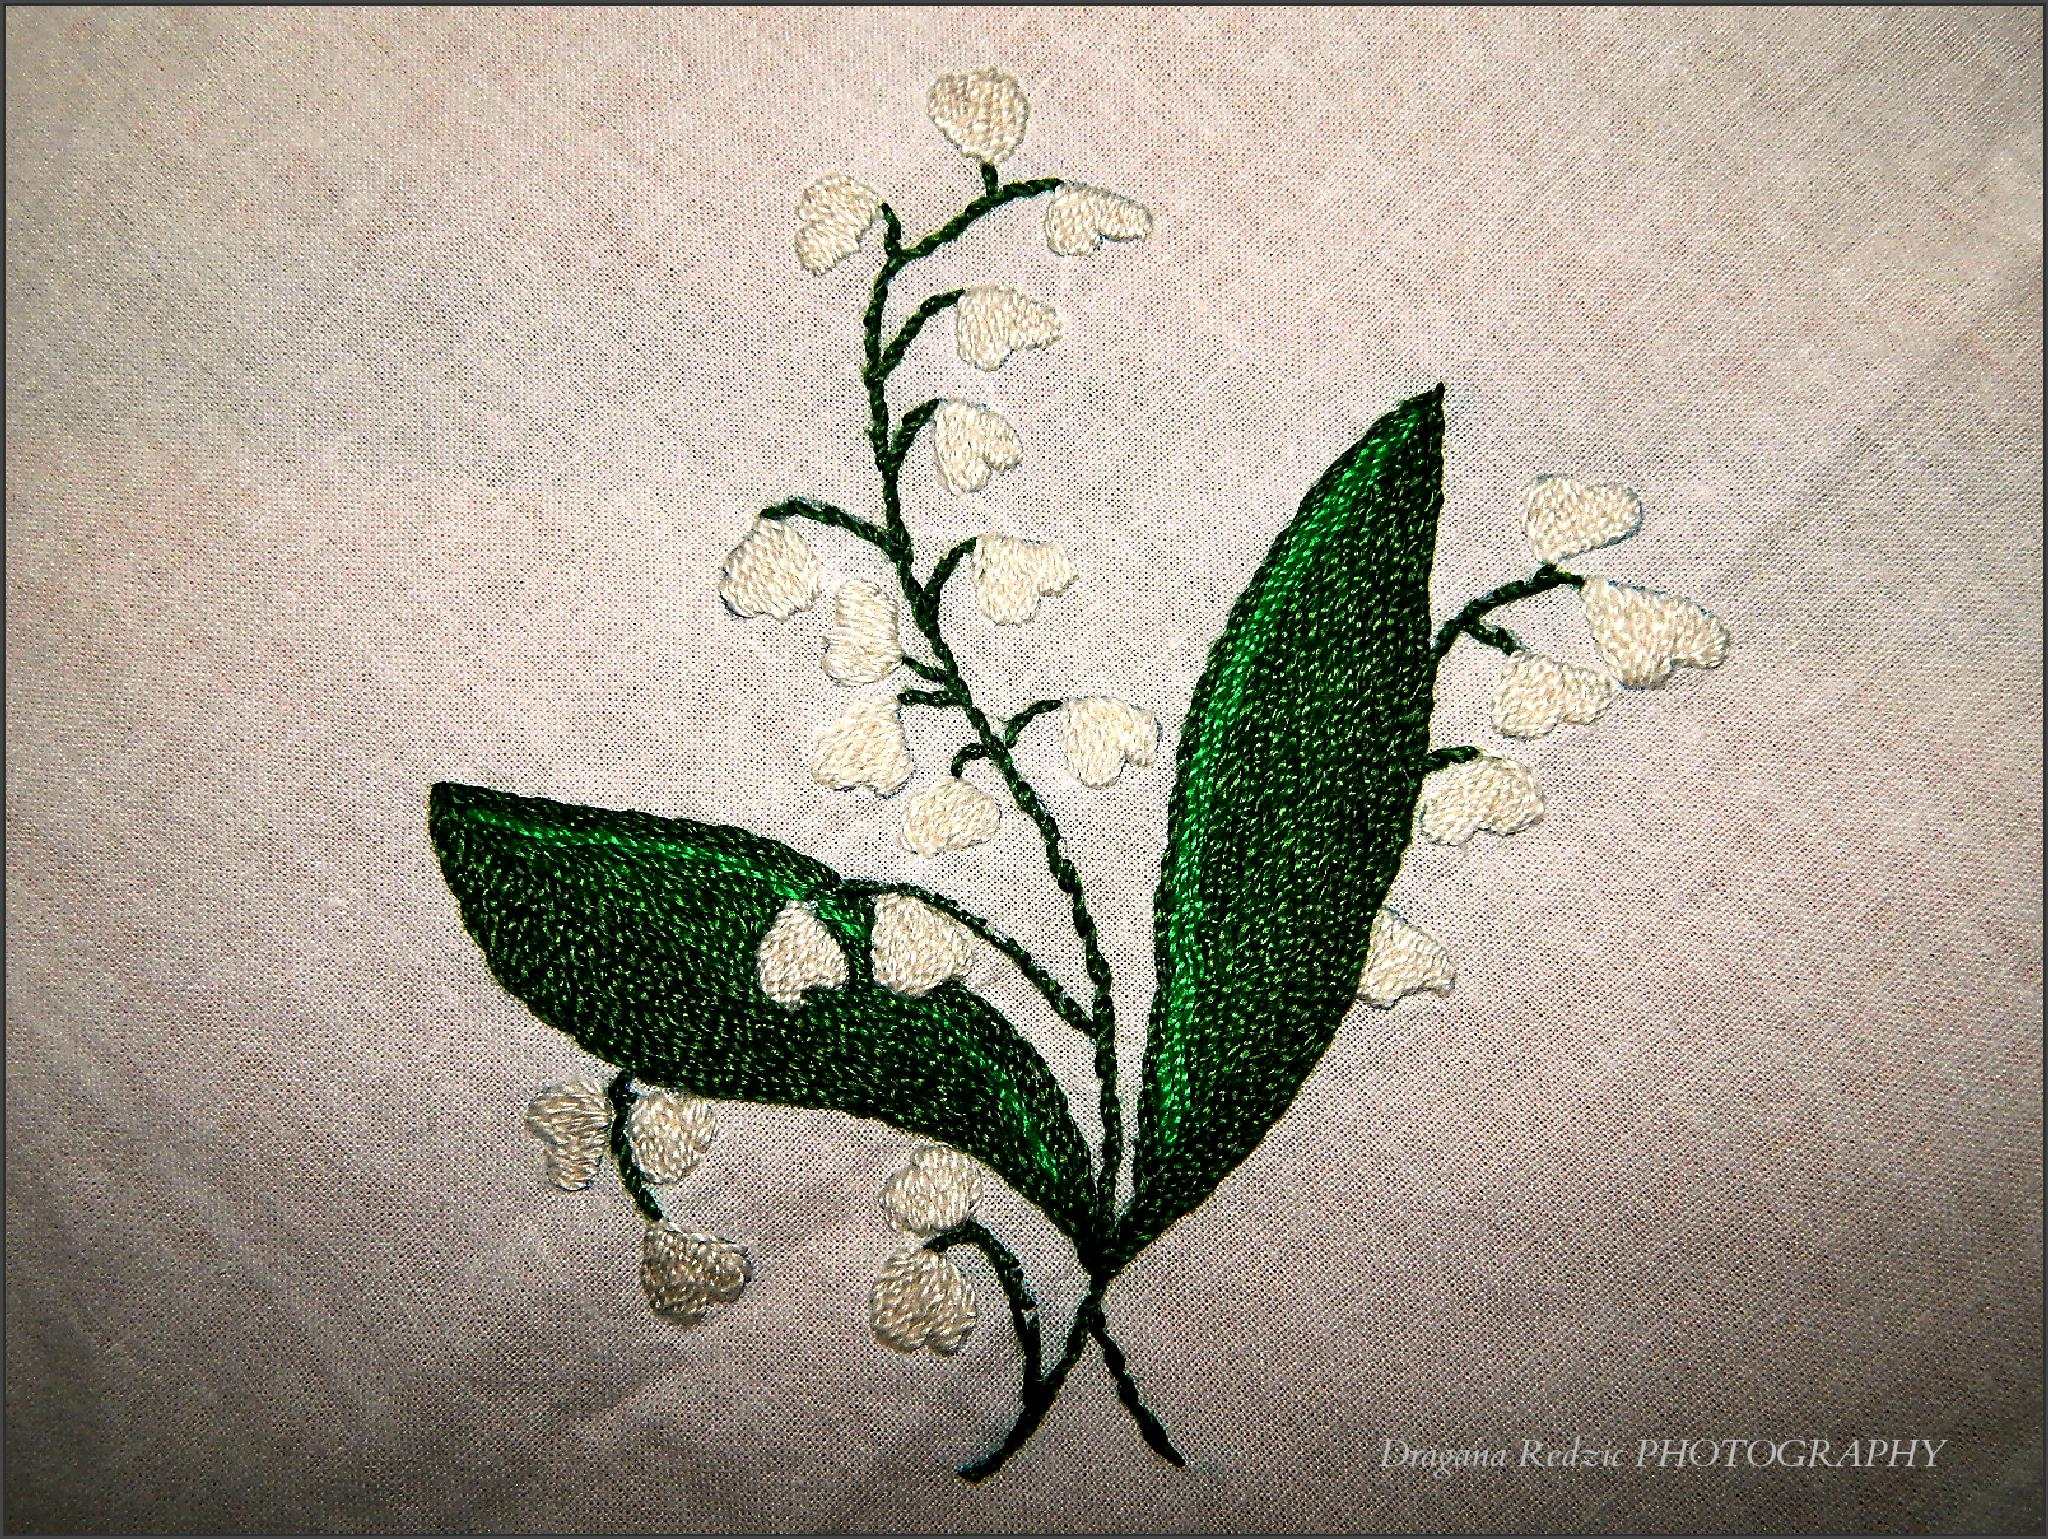 Lily of the valley by Драгана М. Реџић